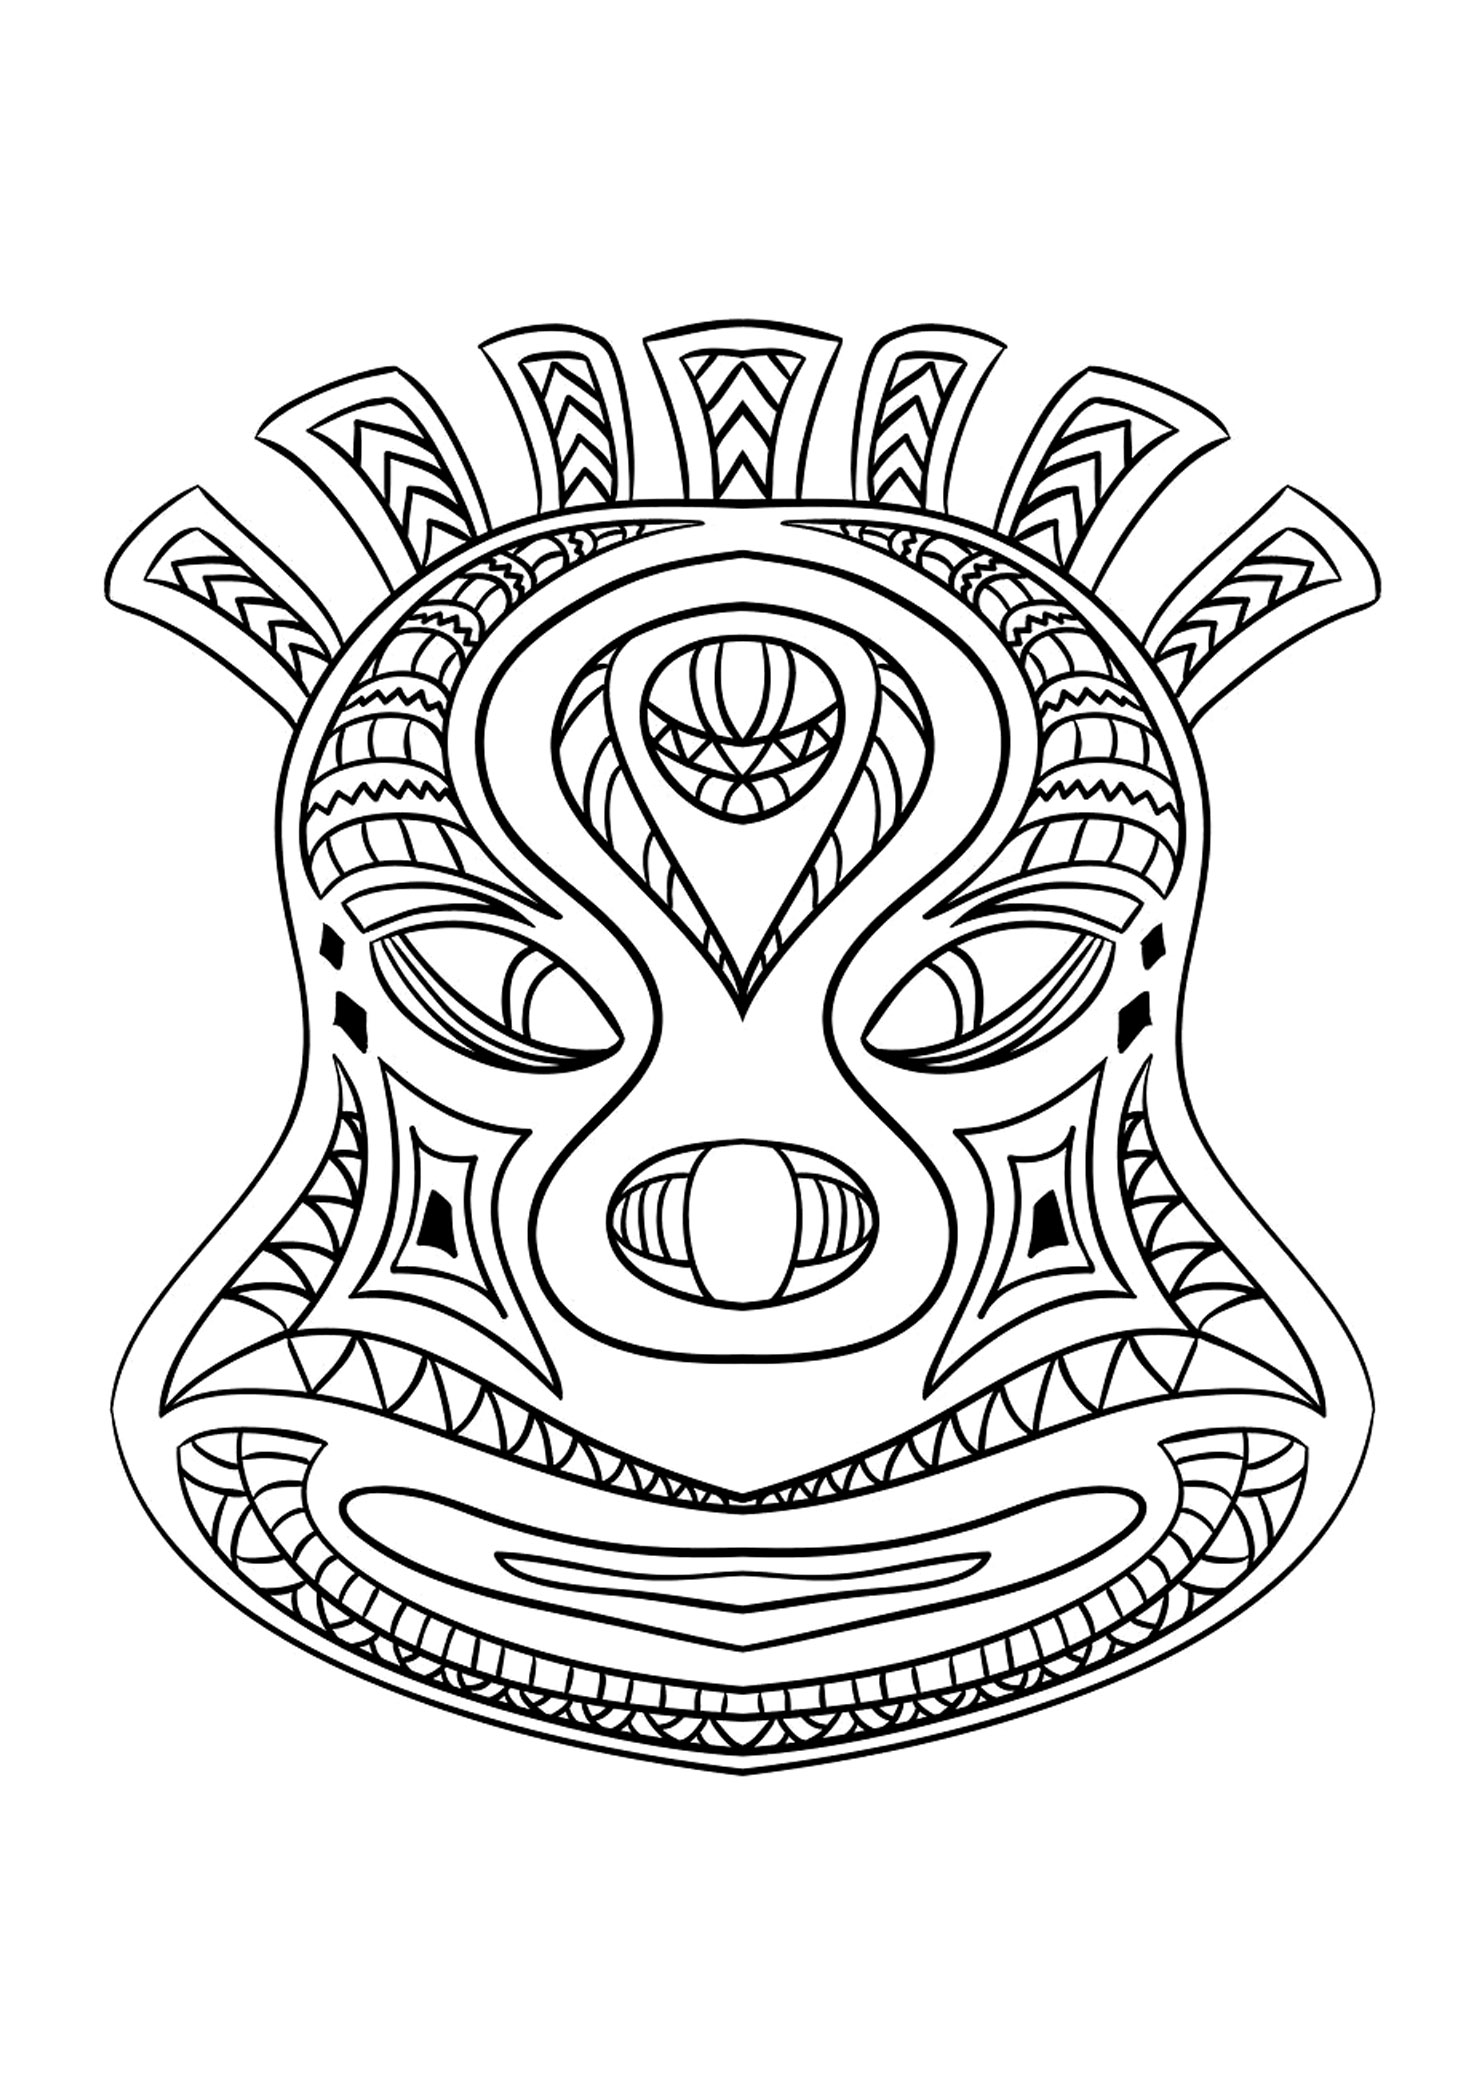 Coloring picture of an african mask 2